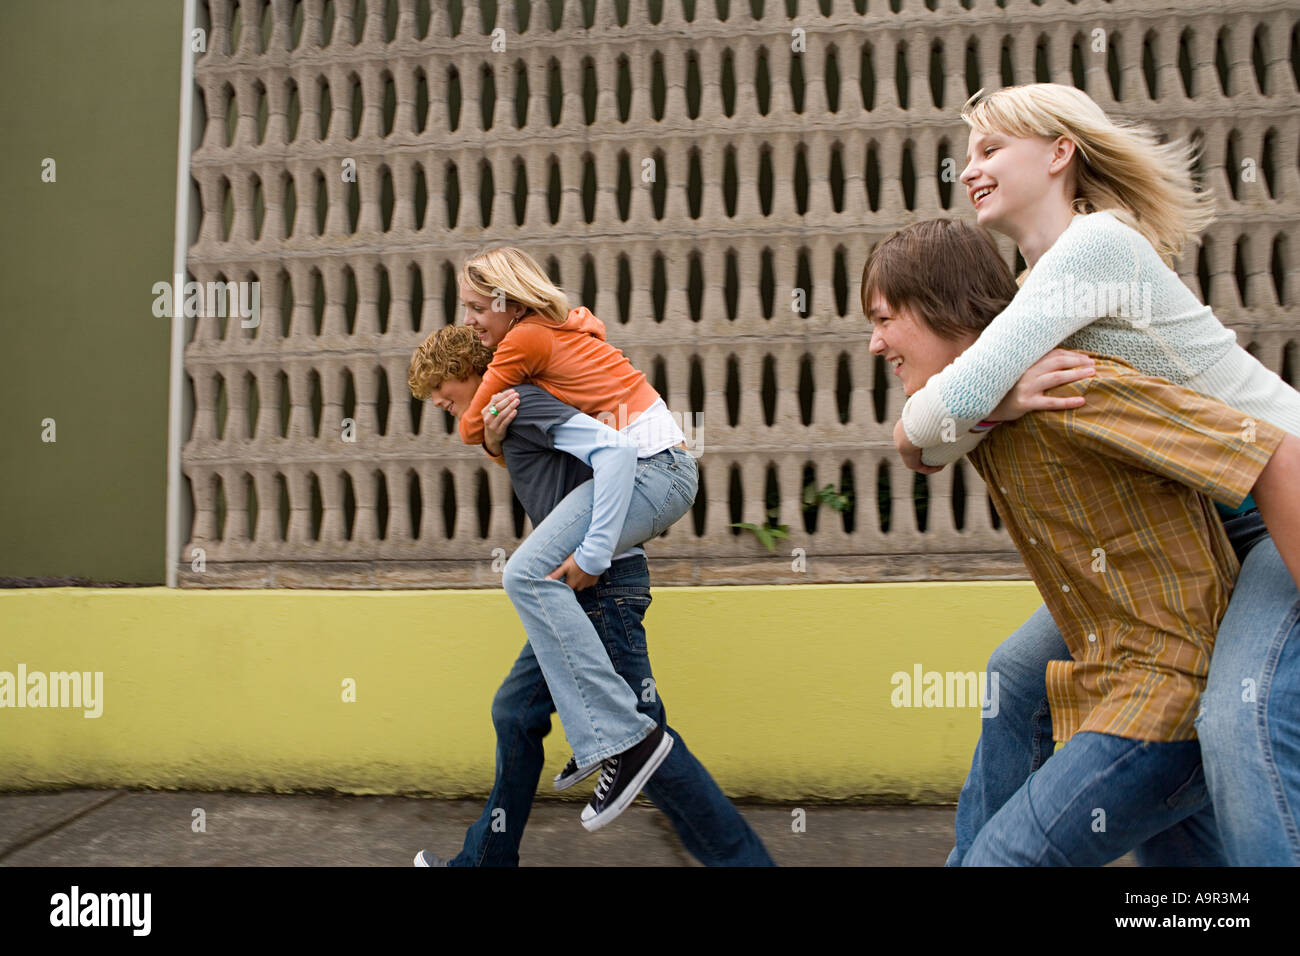 Four teenagers running piggy back races - Stock Image